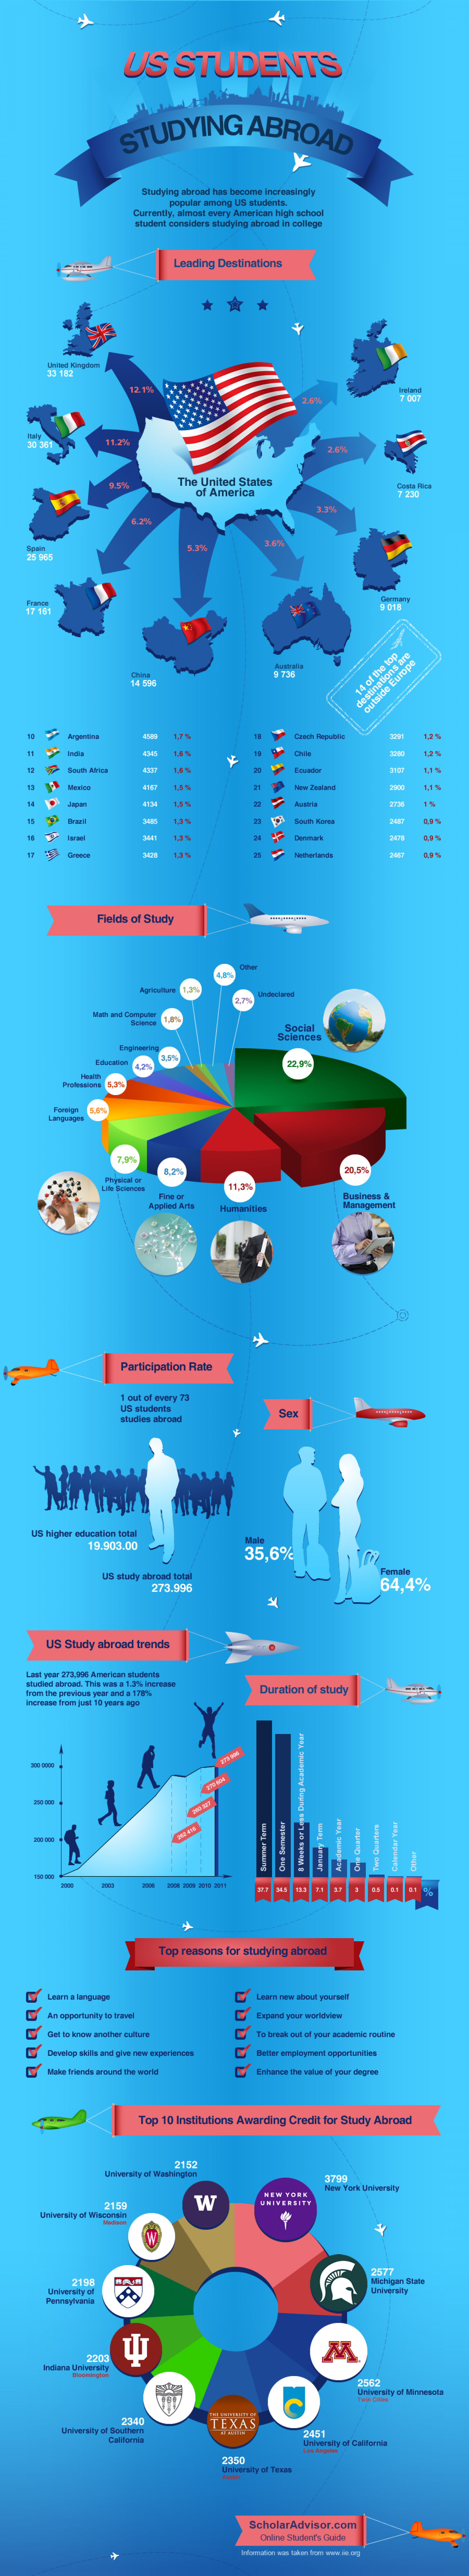 Study abroad Infographic